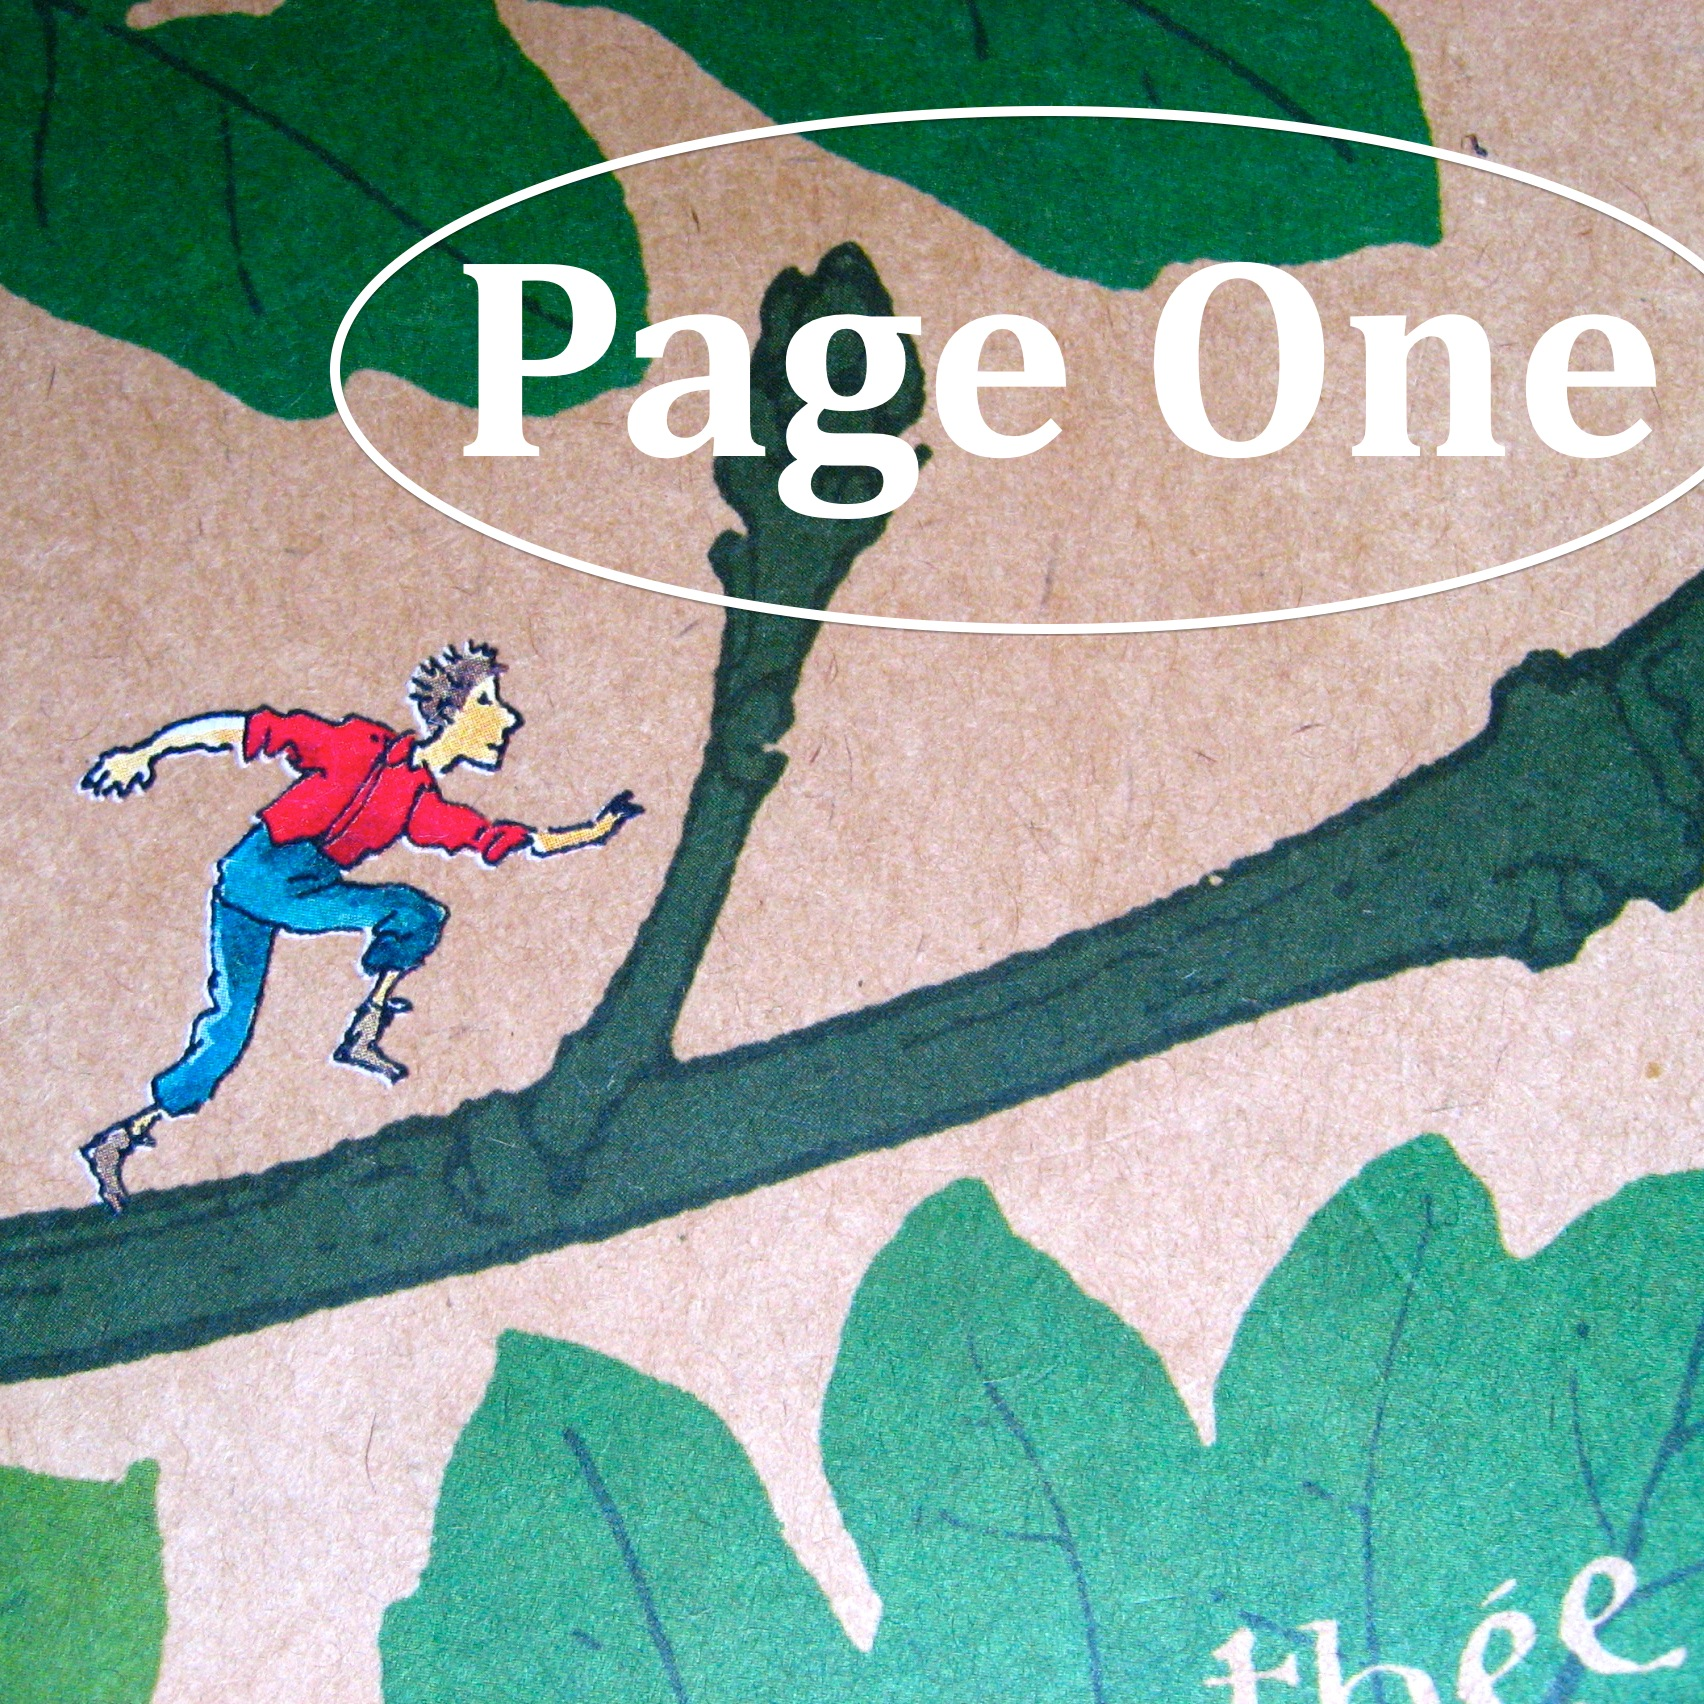 Episode image is a detail from the cover of Toby Alone by Timothée de Fombelle, published in 2008 by Walker Books; jacket illustration by François Place.